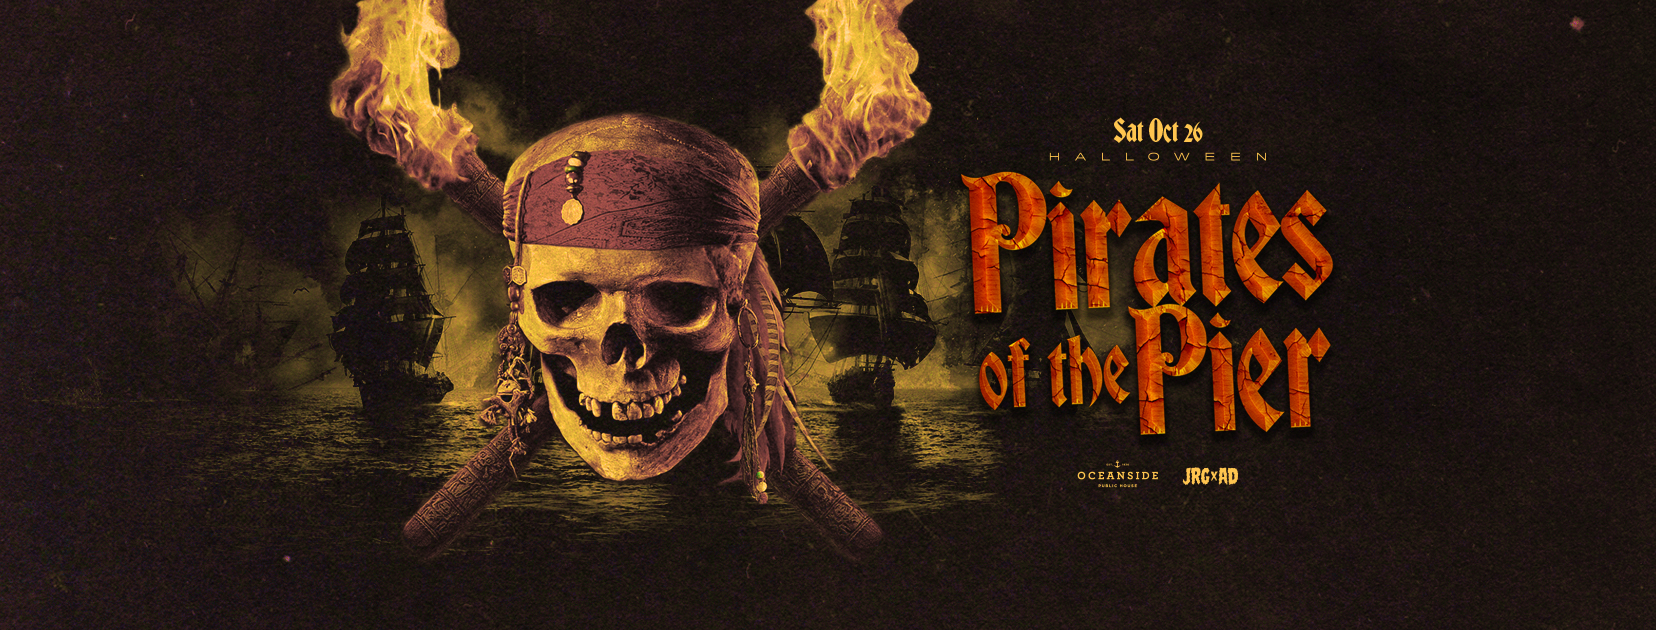 Pirates of the Pier Halloween – OPH